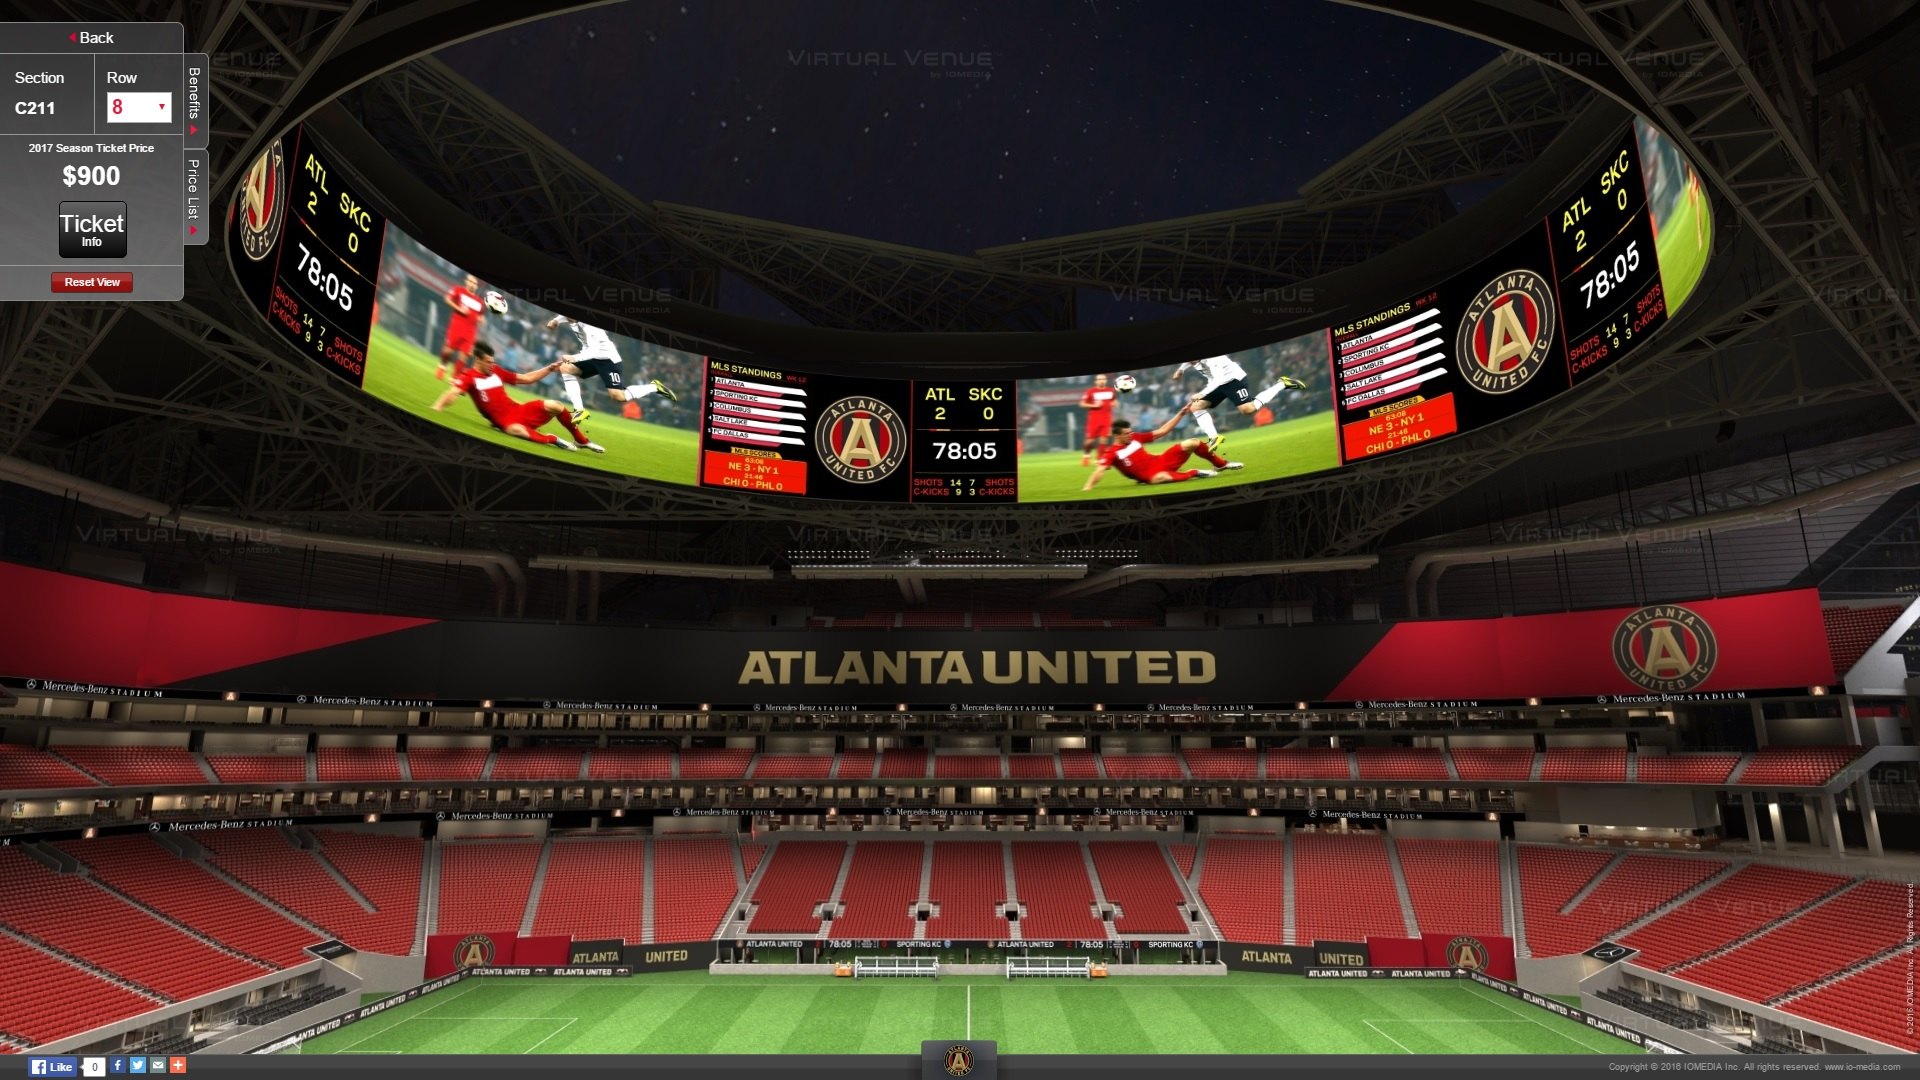 Atlanta united 39 s virtual venue seating for mercedes benz for Mercedes benz stadium seating chart atlanta united